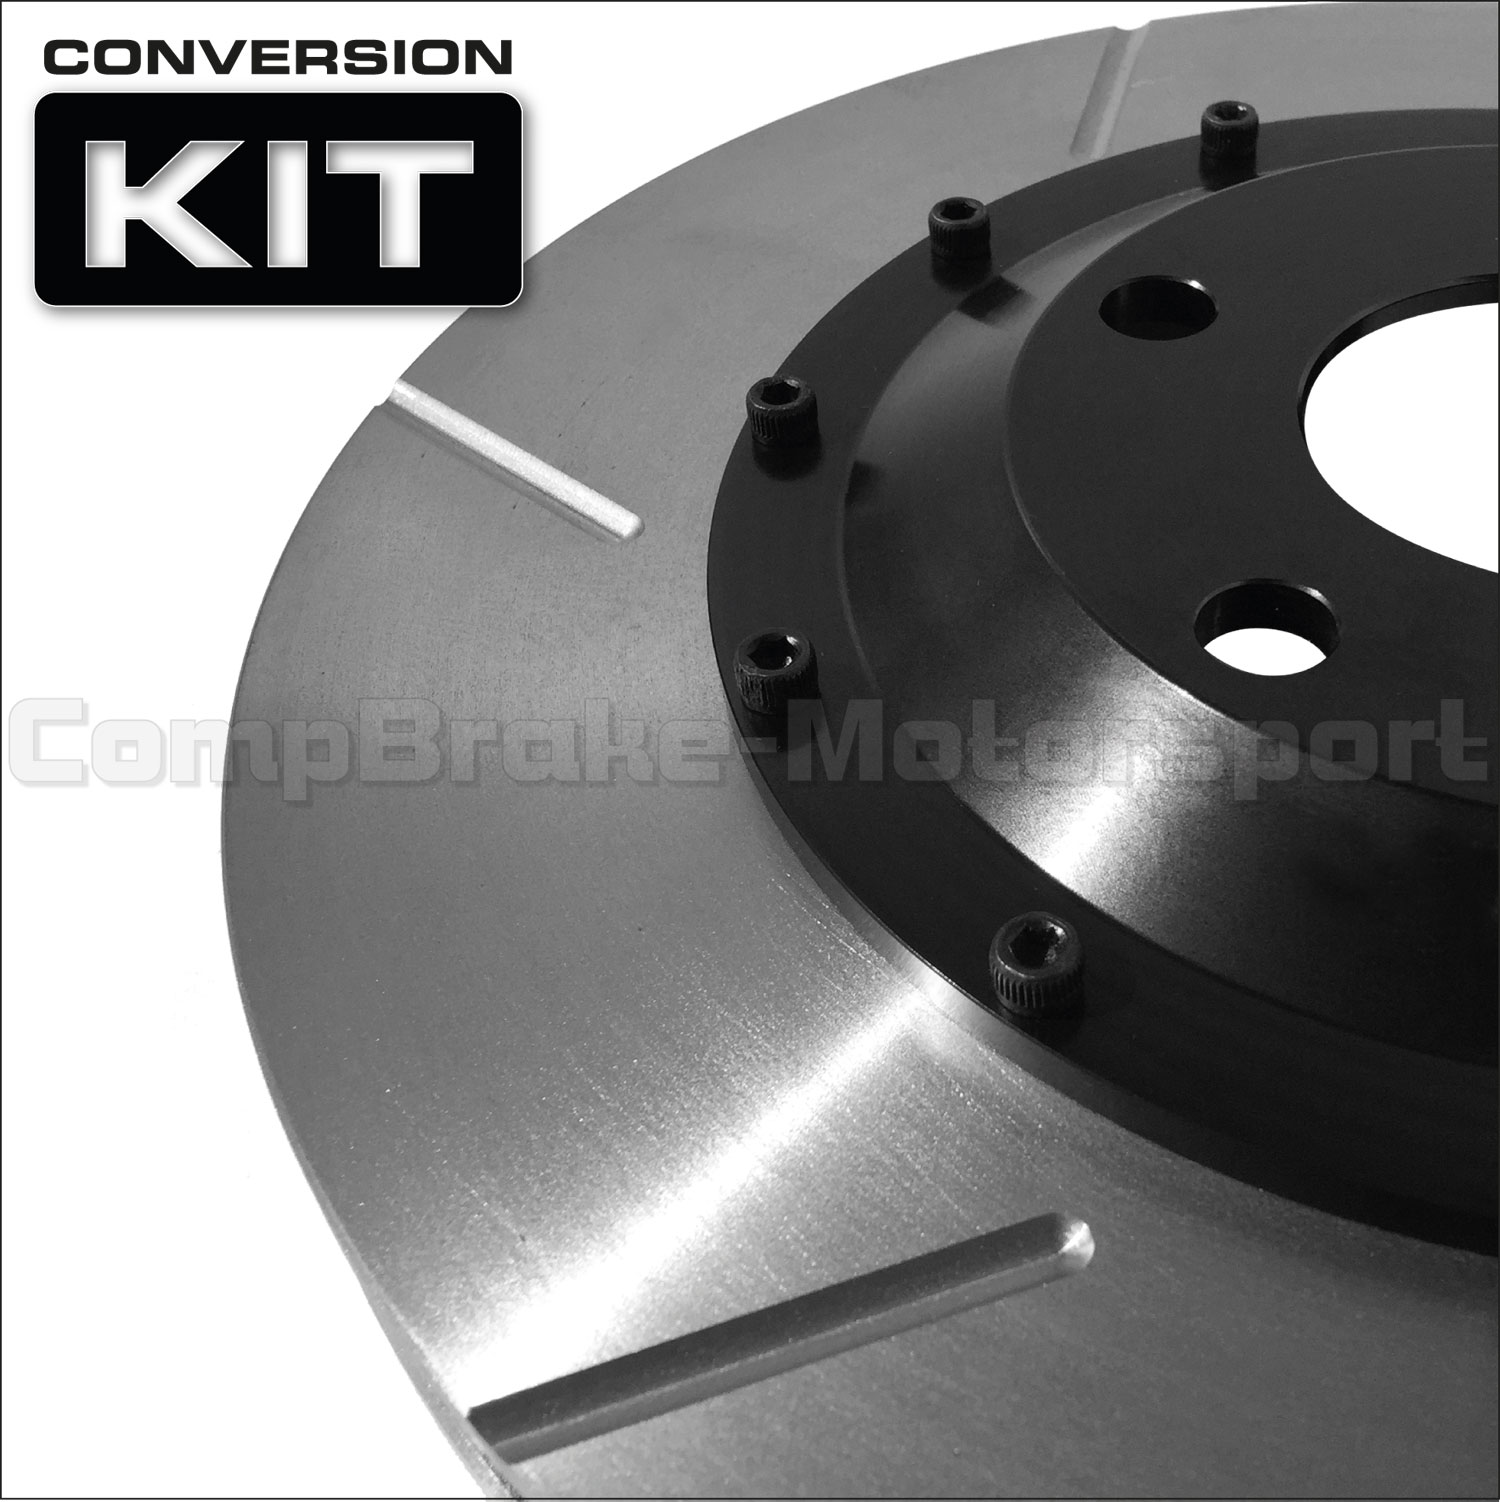 VW Golf Mk4 312 x 25mm 2-Piece Front Brake Disc Conversion Kit [Bell/Rotor  Combo] Pair - 2 Piece Disc Conversions, VW, Golf MK4 - www compbrake com